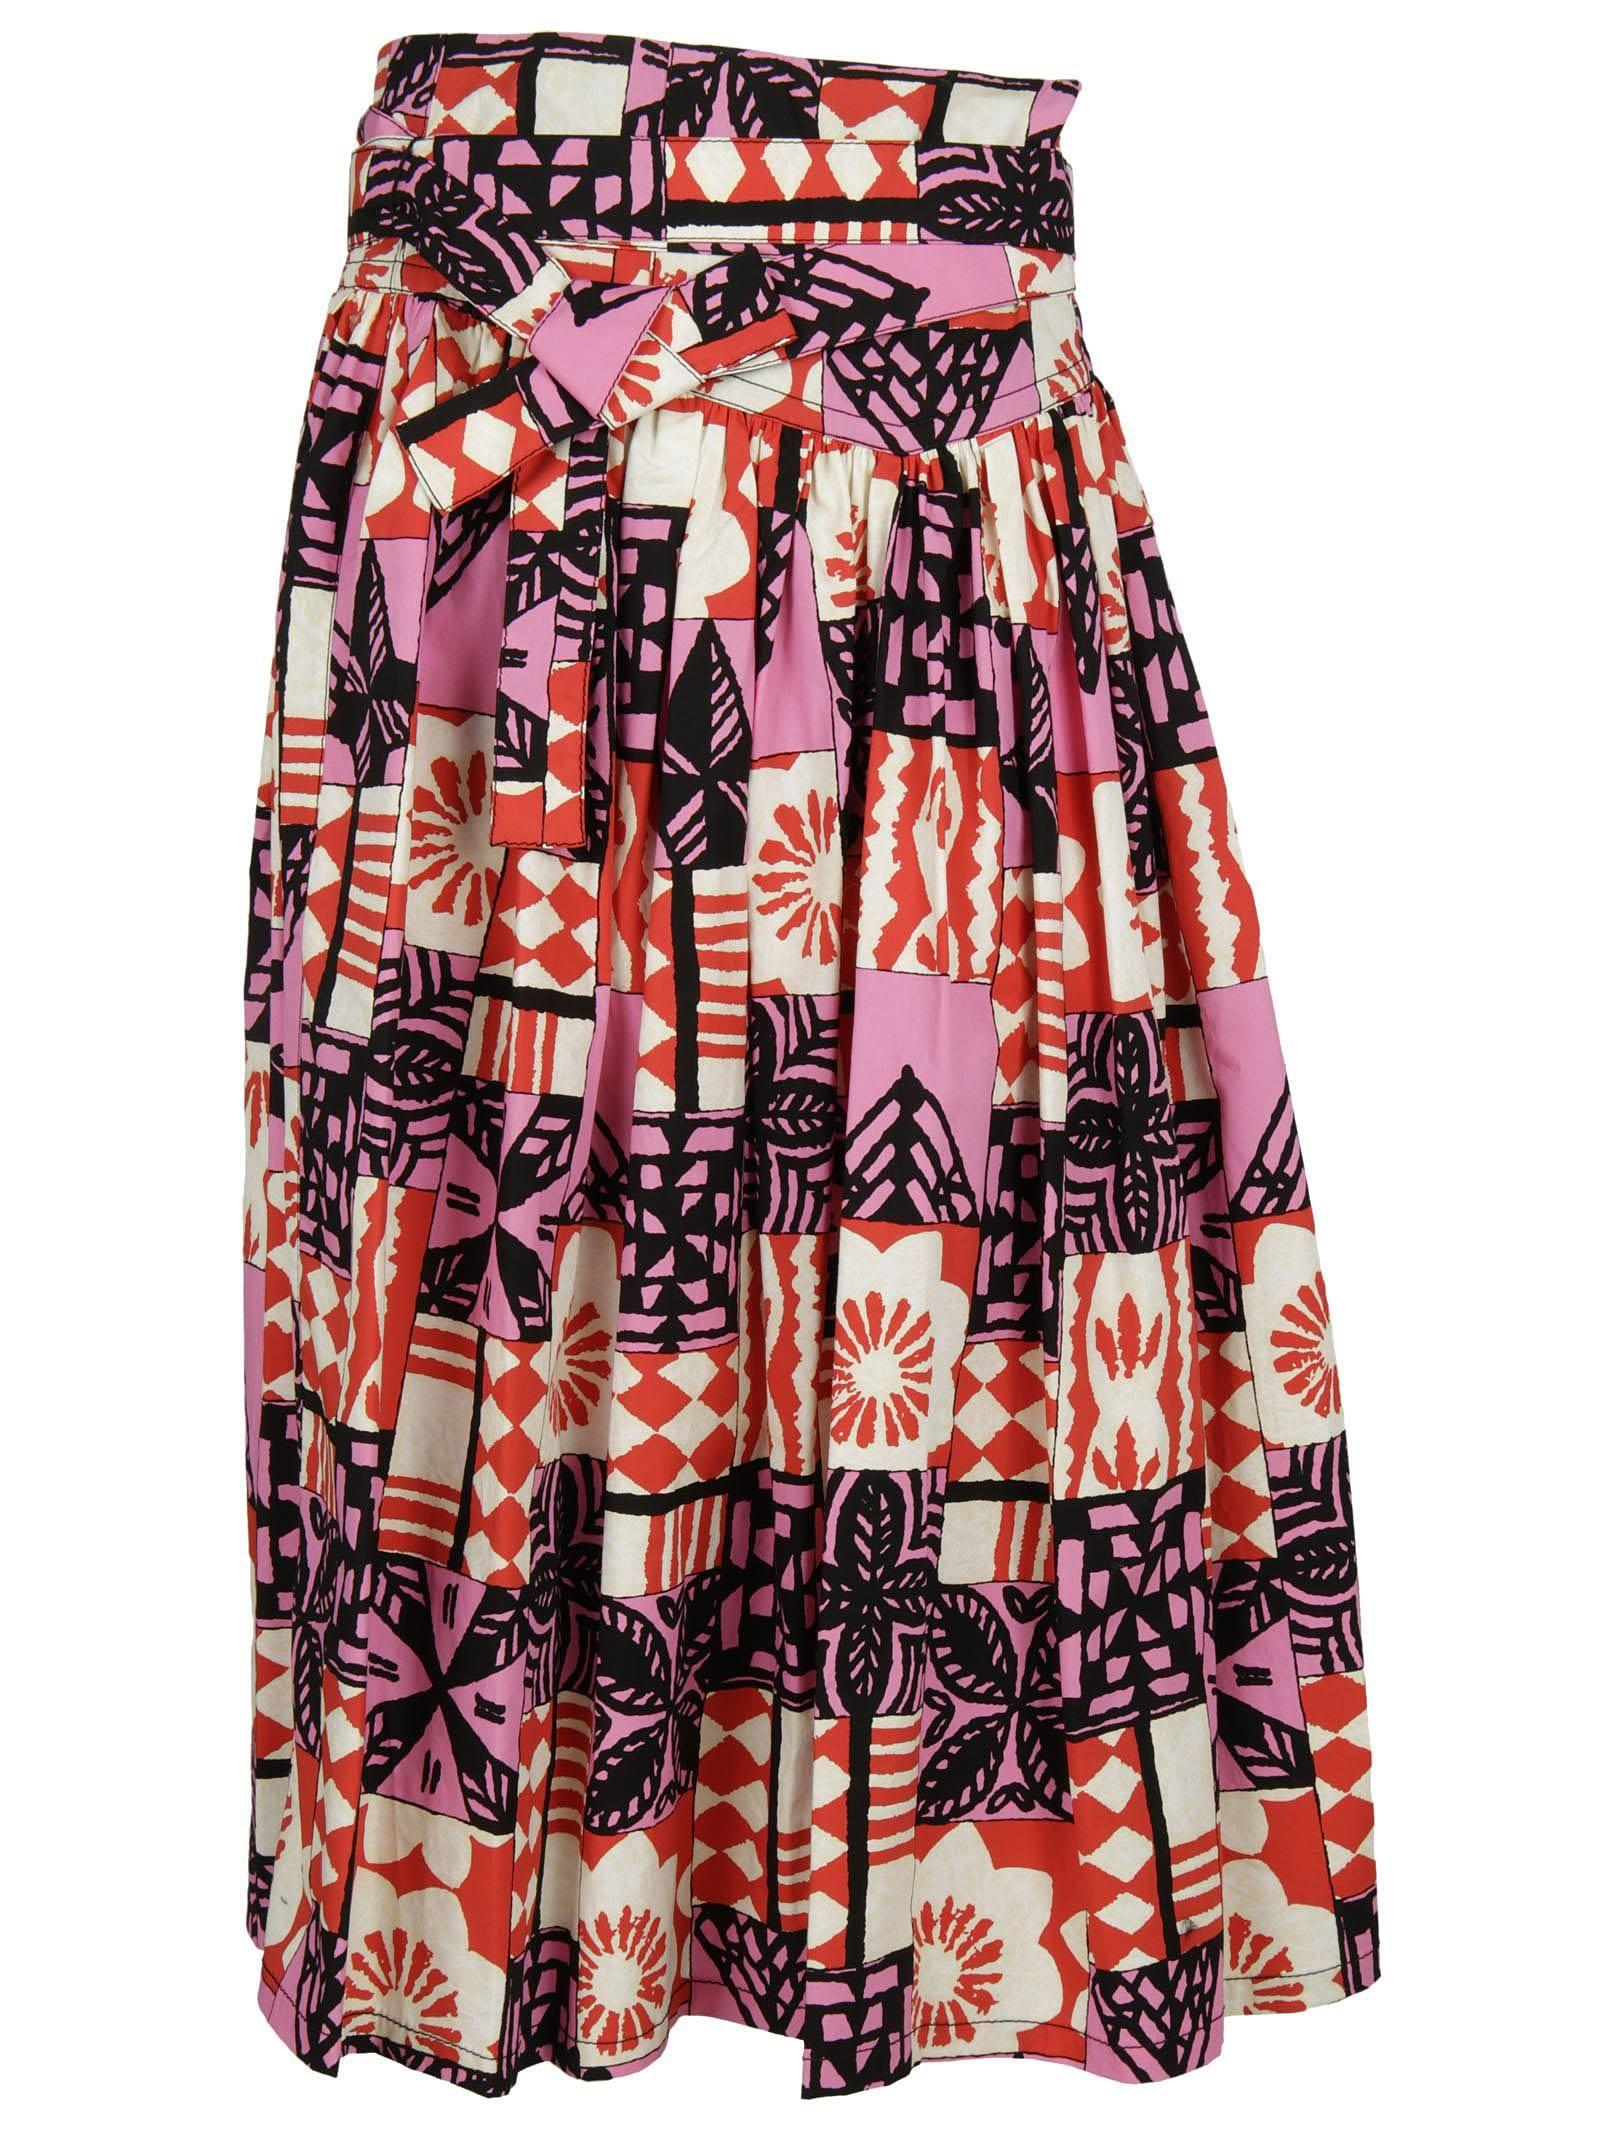 Marc Jacobs Multicolor Cotton Skirt In Pink Multi